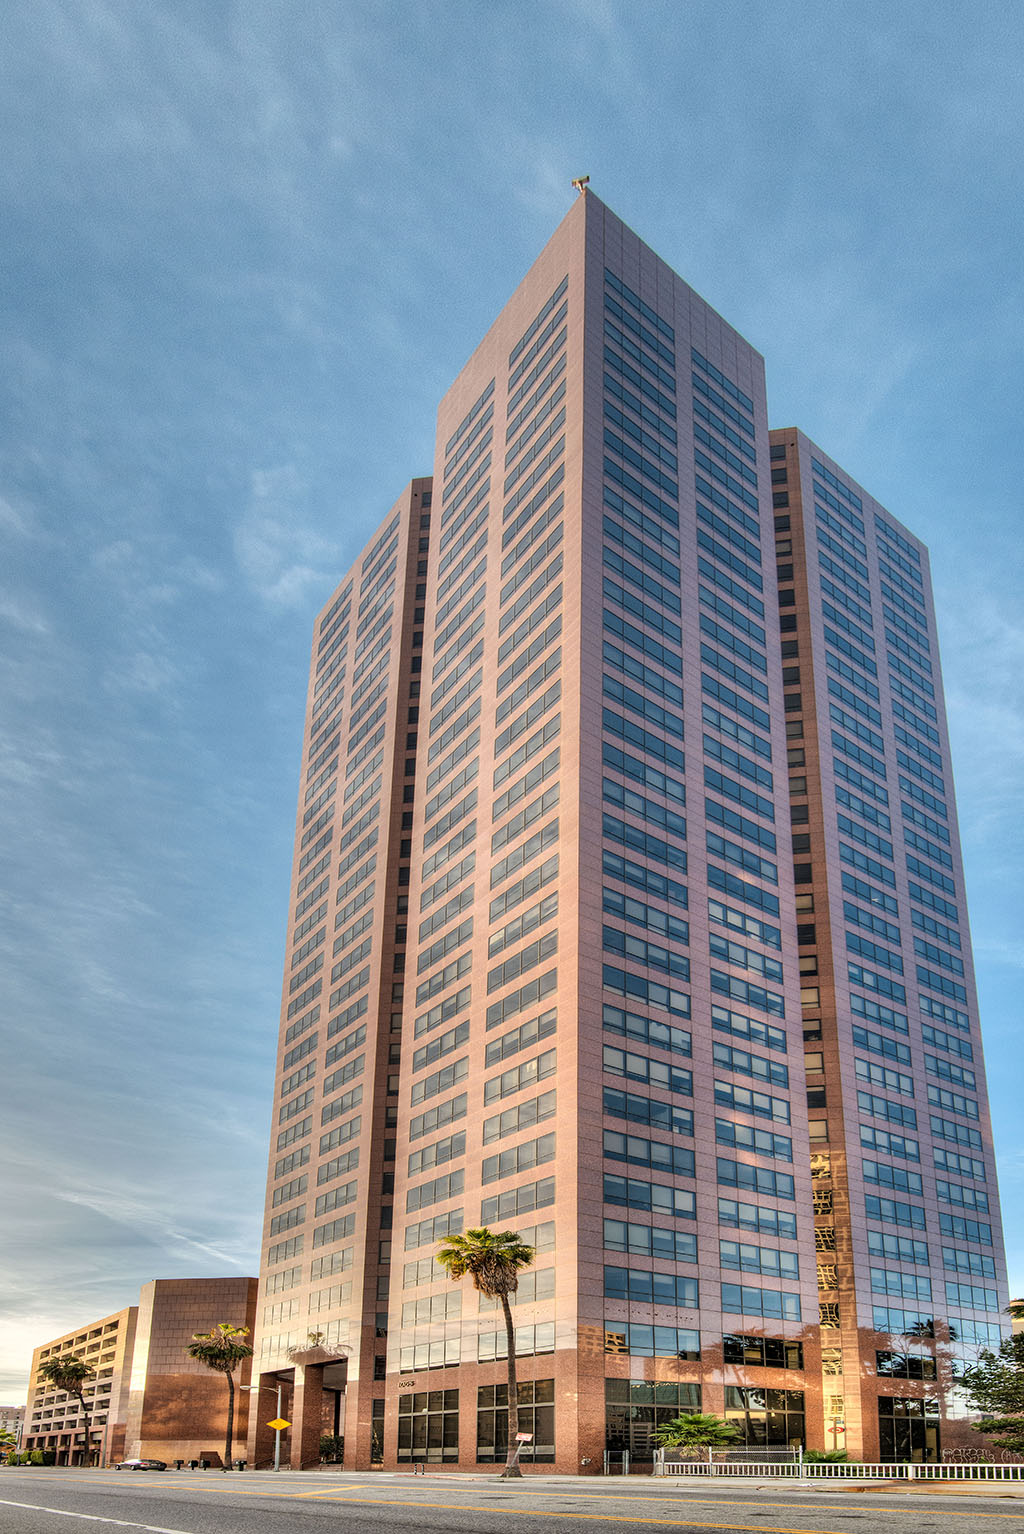 Titan Offices, Inc - 1055 West 7th Street - Los Angeles - CA (Downtown Financial)